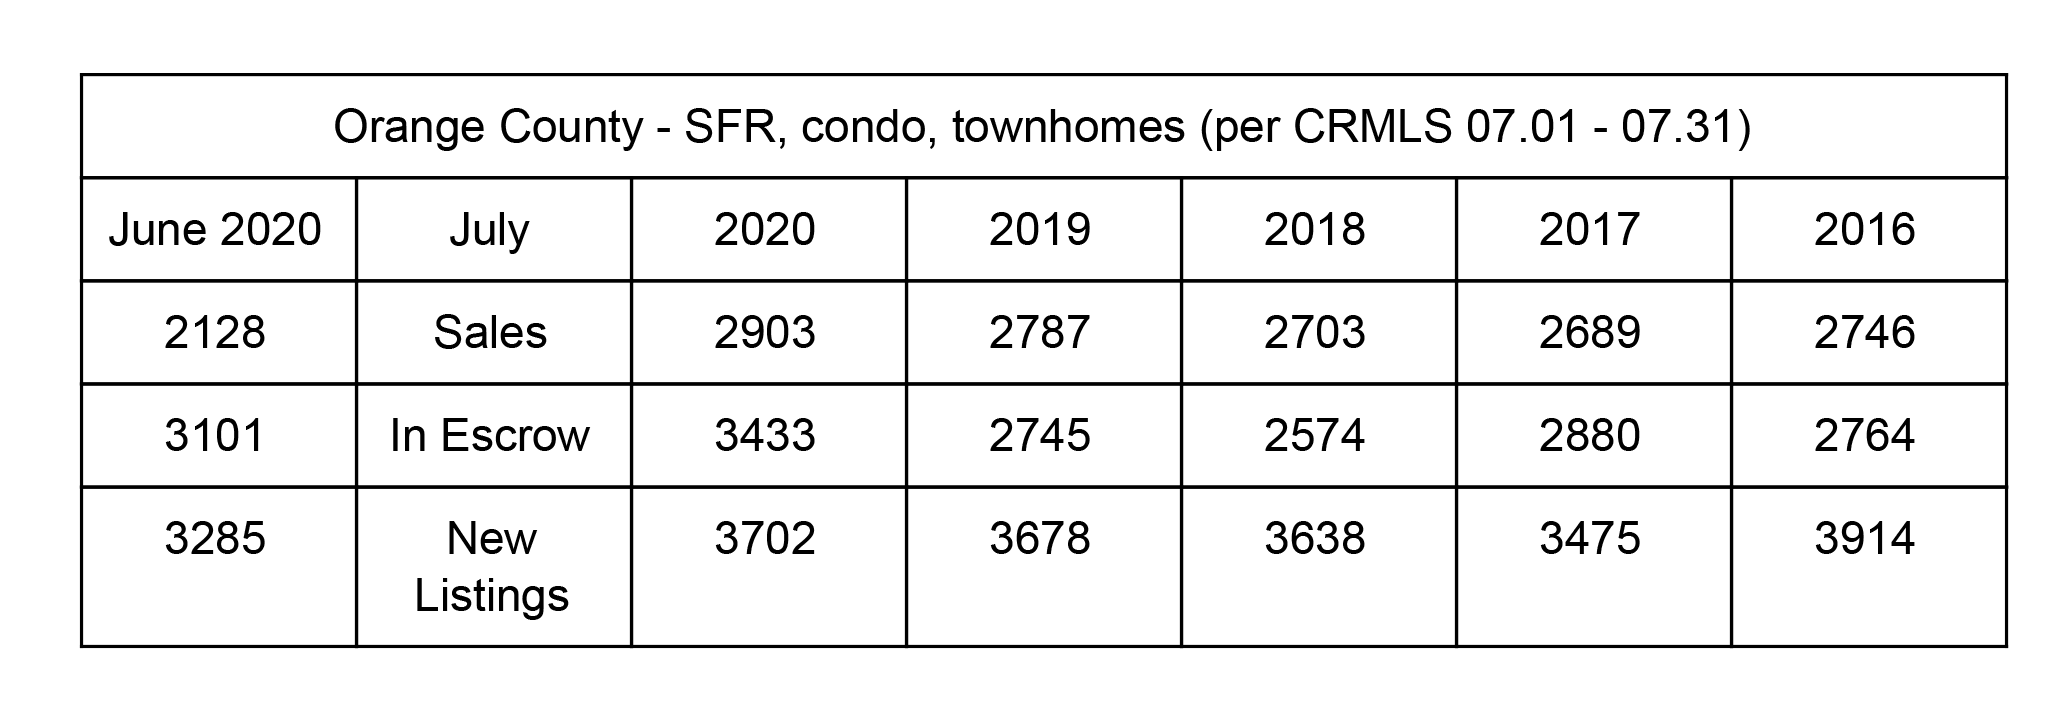 OC Housing Market Update - July 2020